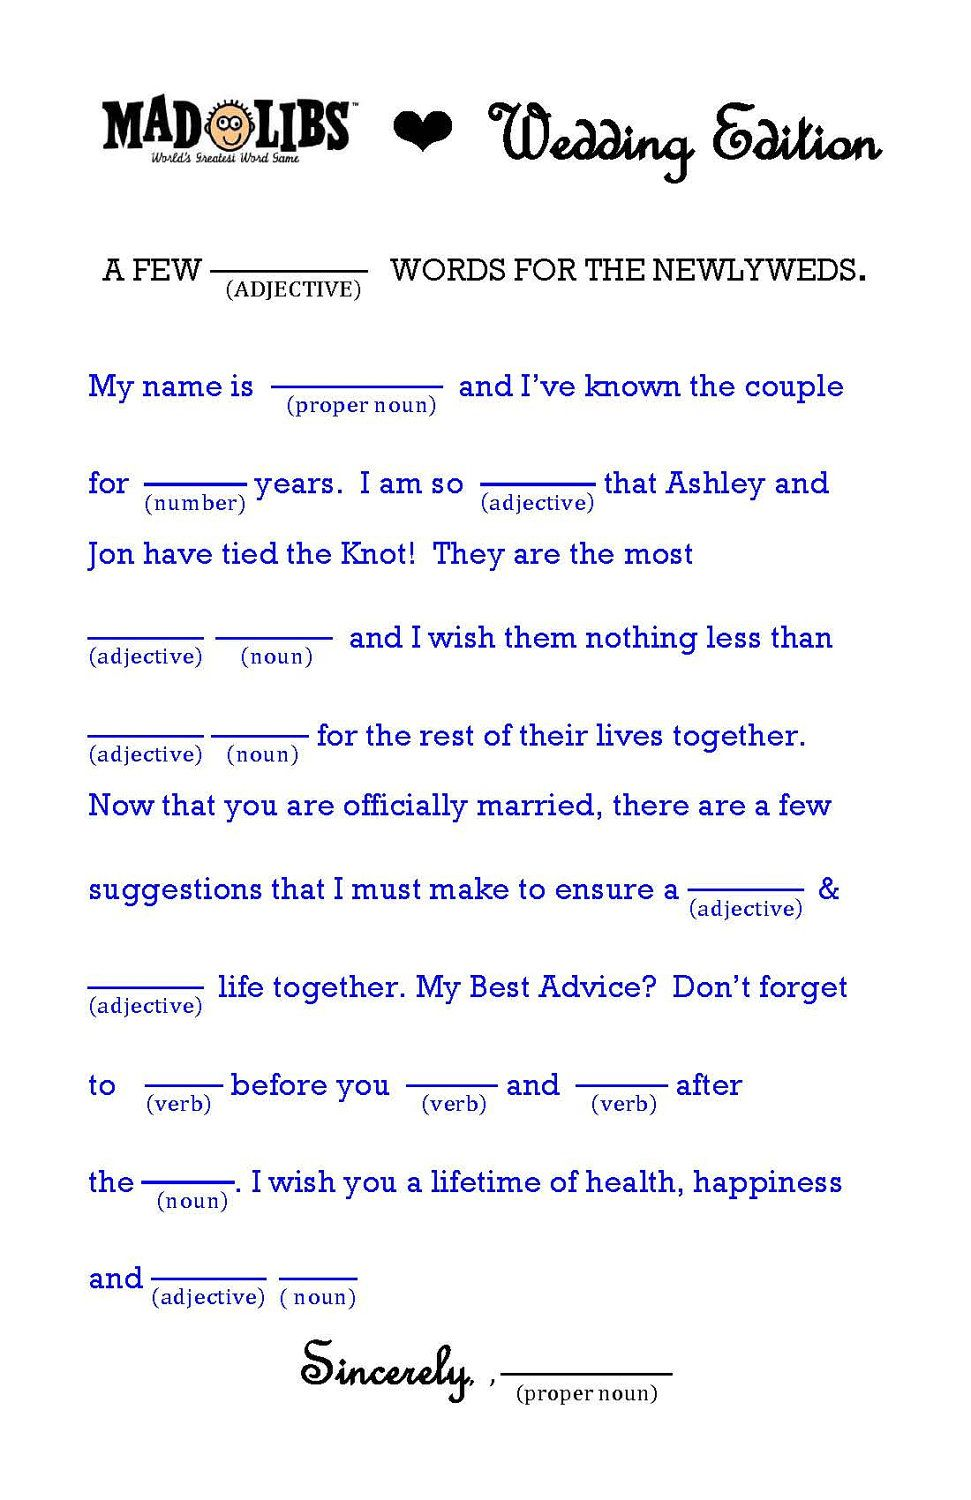 Wedding mad libs word template for a unique guest book ceremony wedding mad libs word template for a unique guest book wedding reception ideas wedding maxwellsz